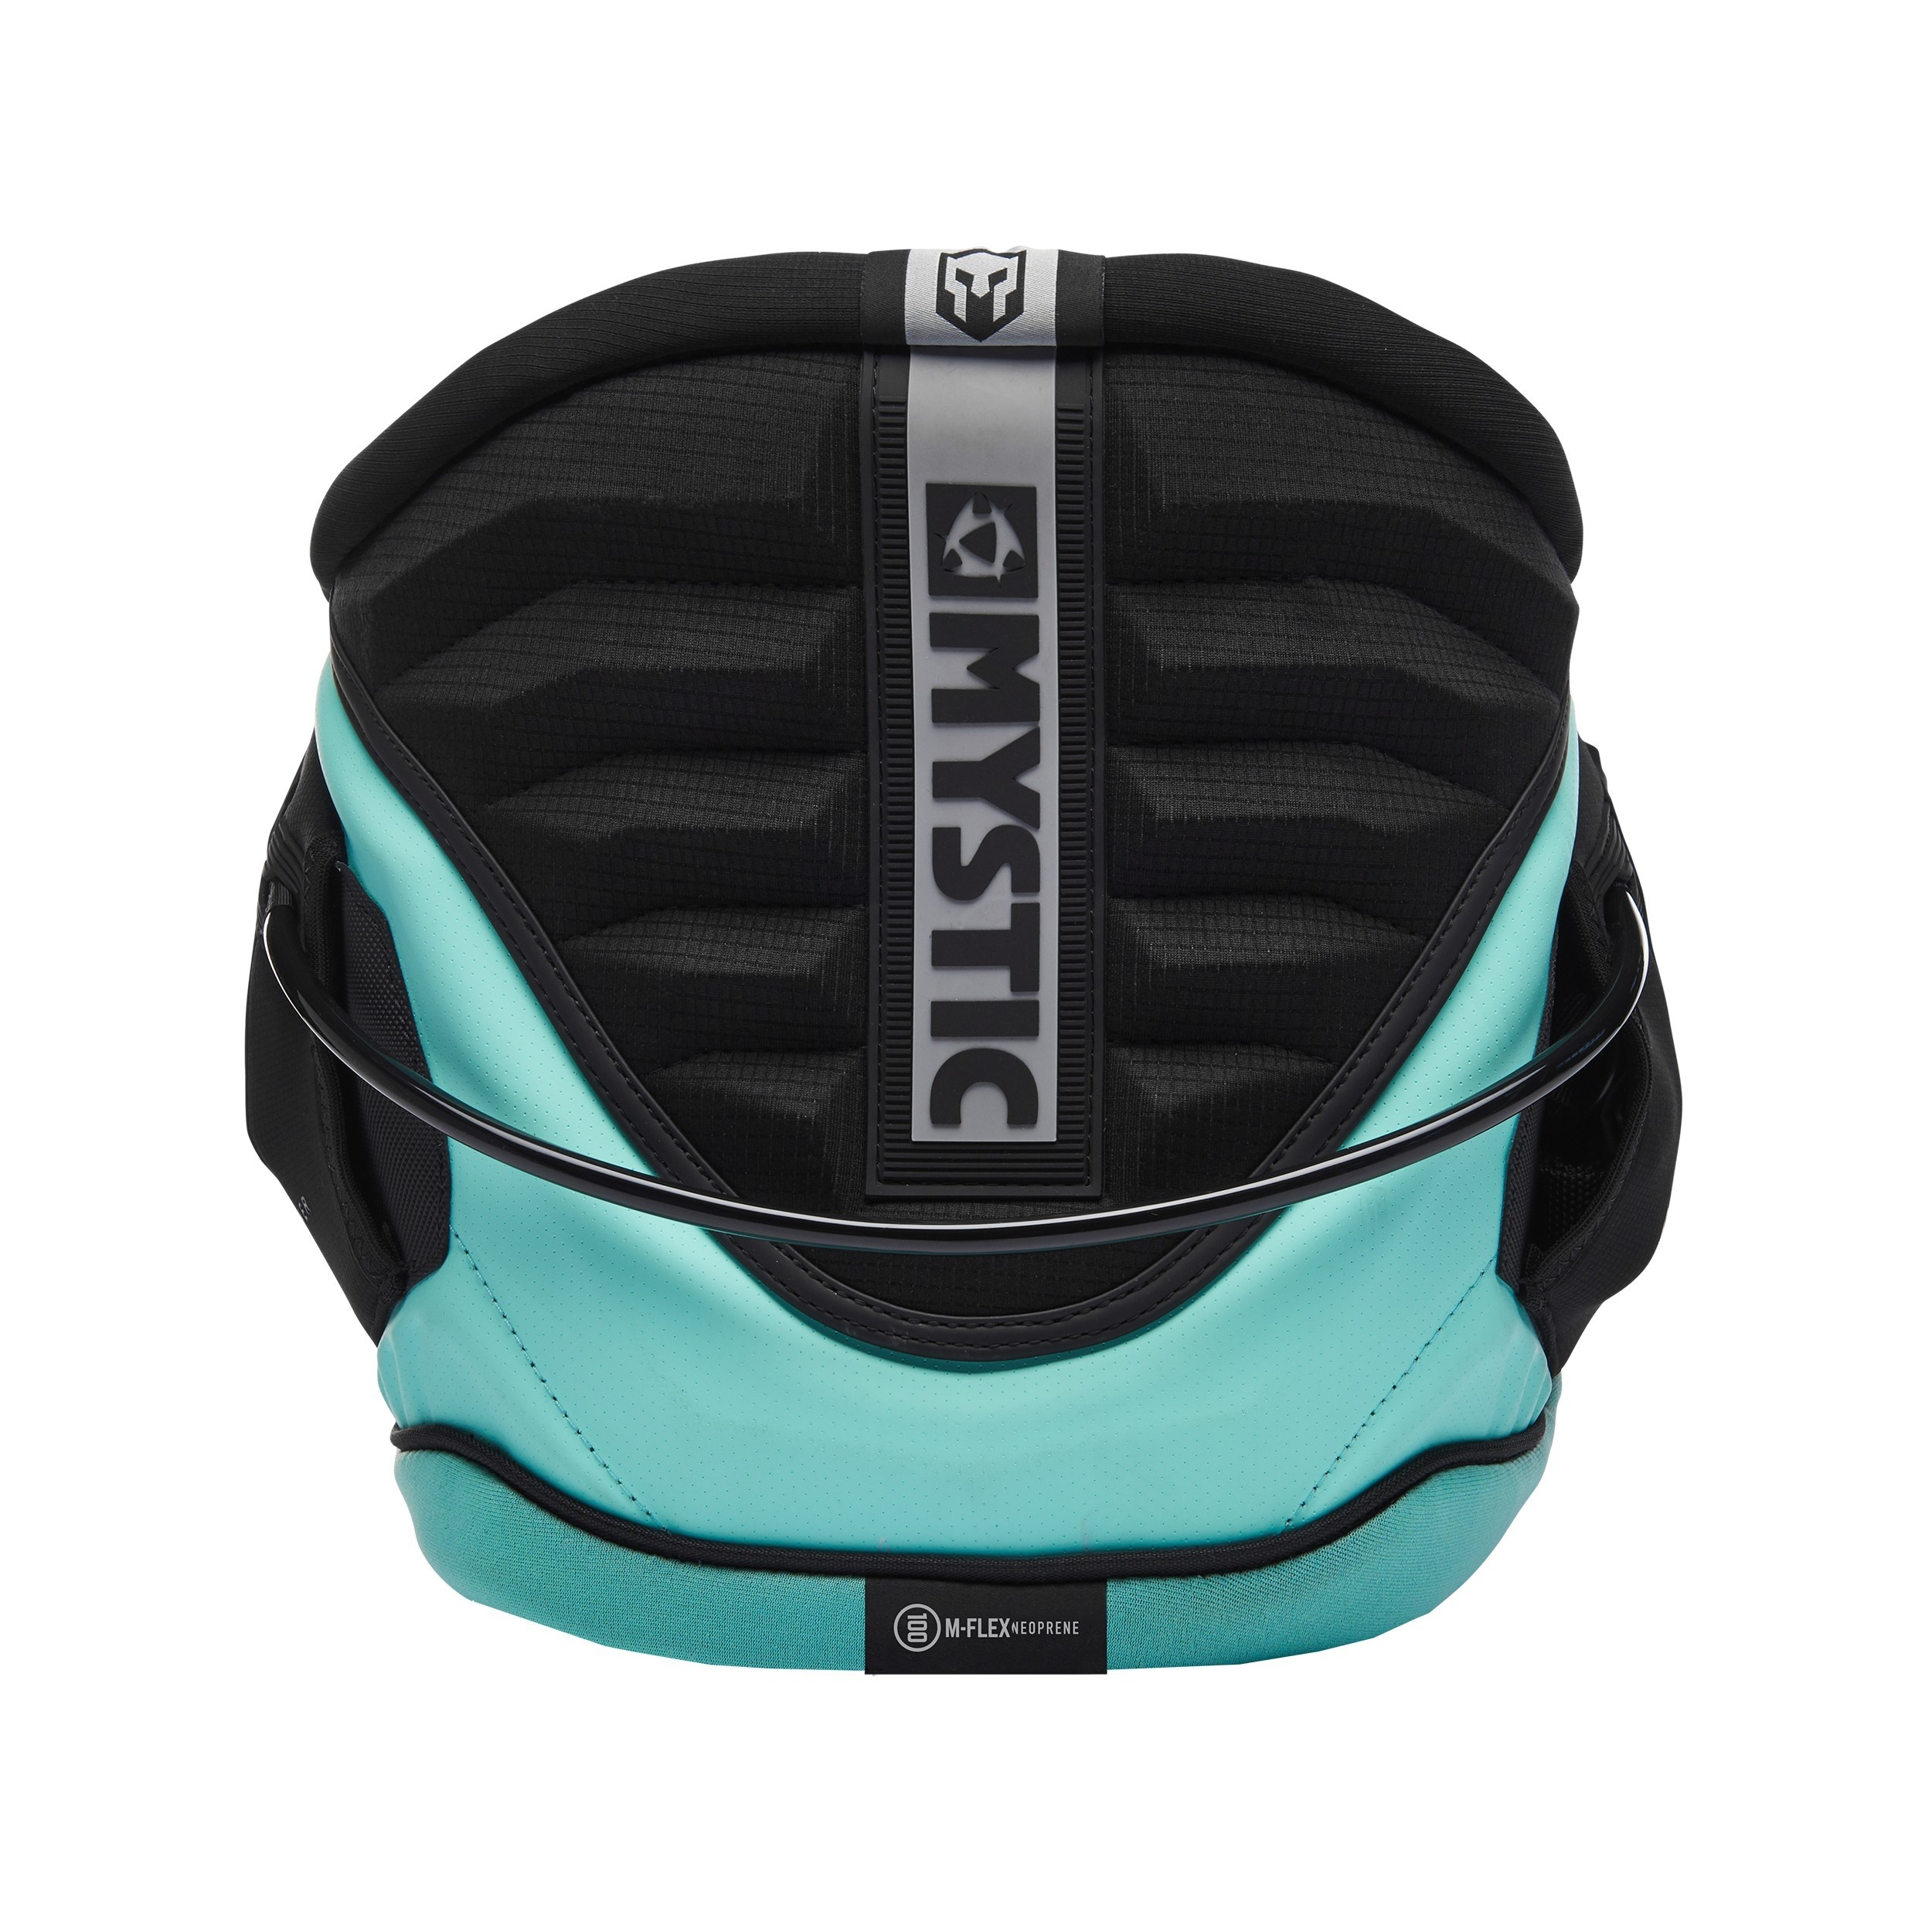 Mystic Warrior Vl Kitesurf Waist Harness